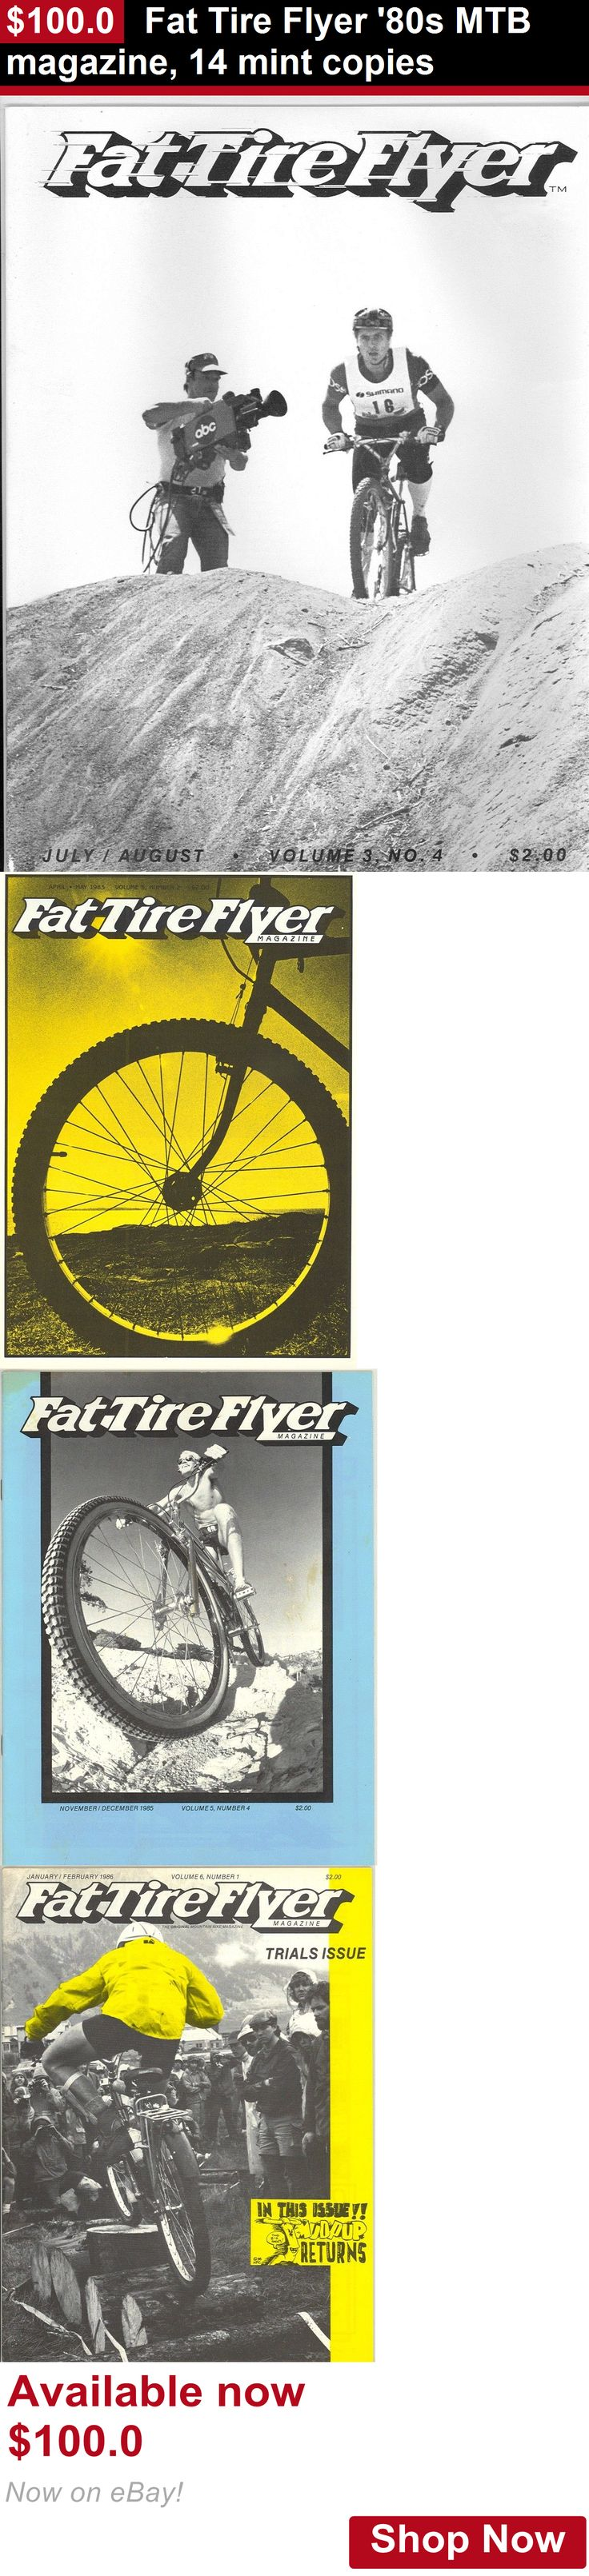 Magazine Back Issues: Fat Tire Flyer 80S Mtb Magazine, 14 Mint Copies BUY IT NOW ONLY: $100.0